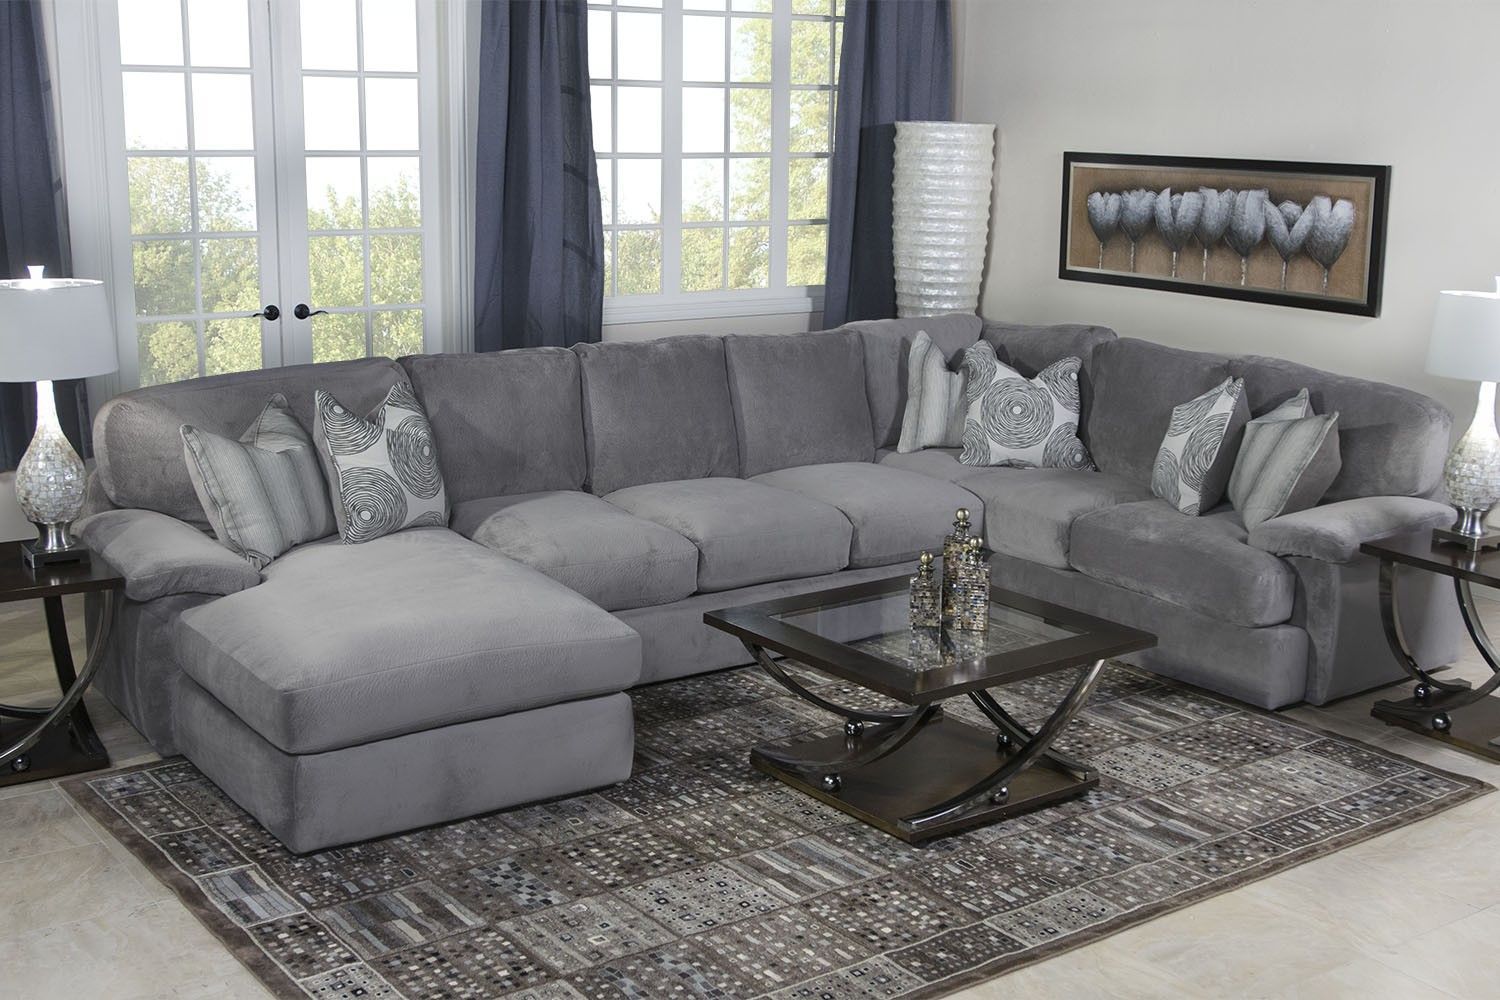 Key West Sectional Living Room In Gray Living Room Mor Furniture For Less New House Decor